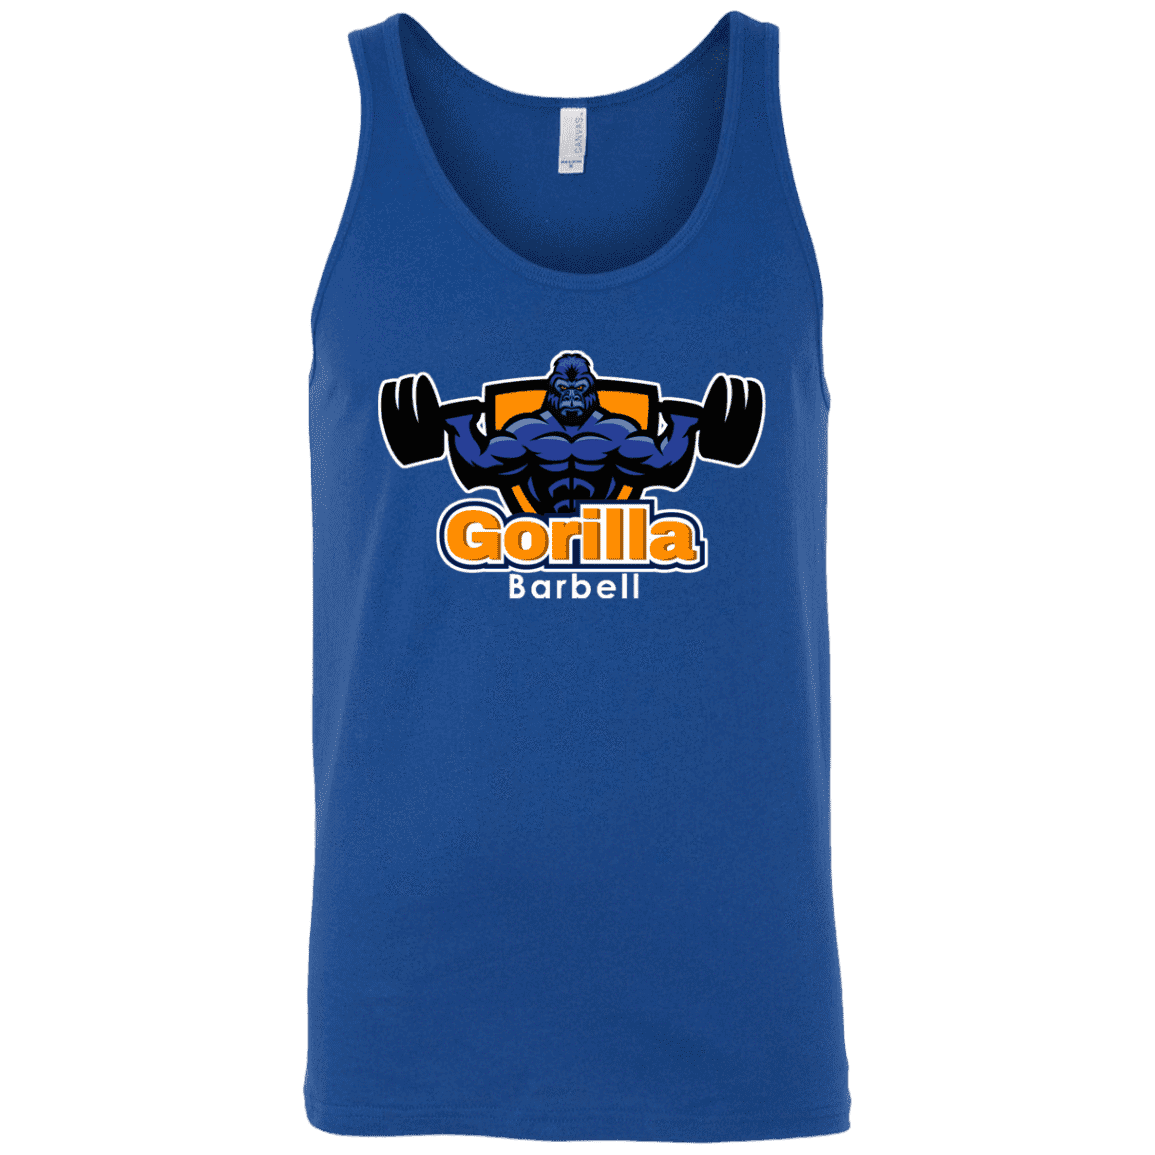 T-Shirts Royal Blue / X-Small Gorilla Barbell Tank Top